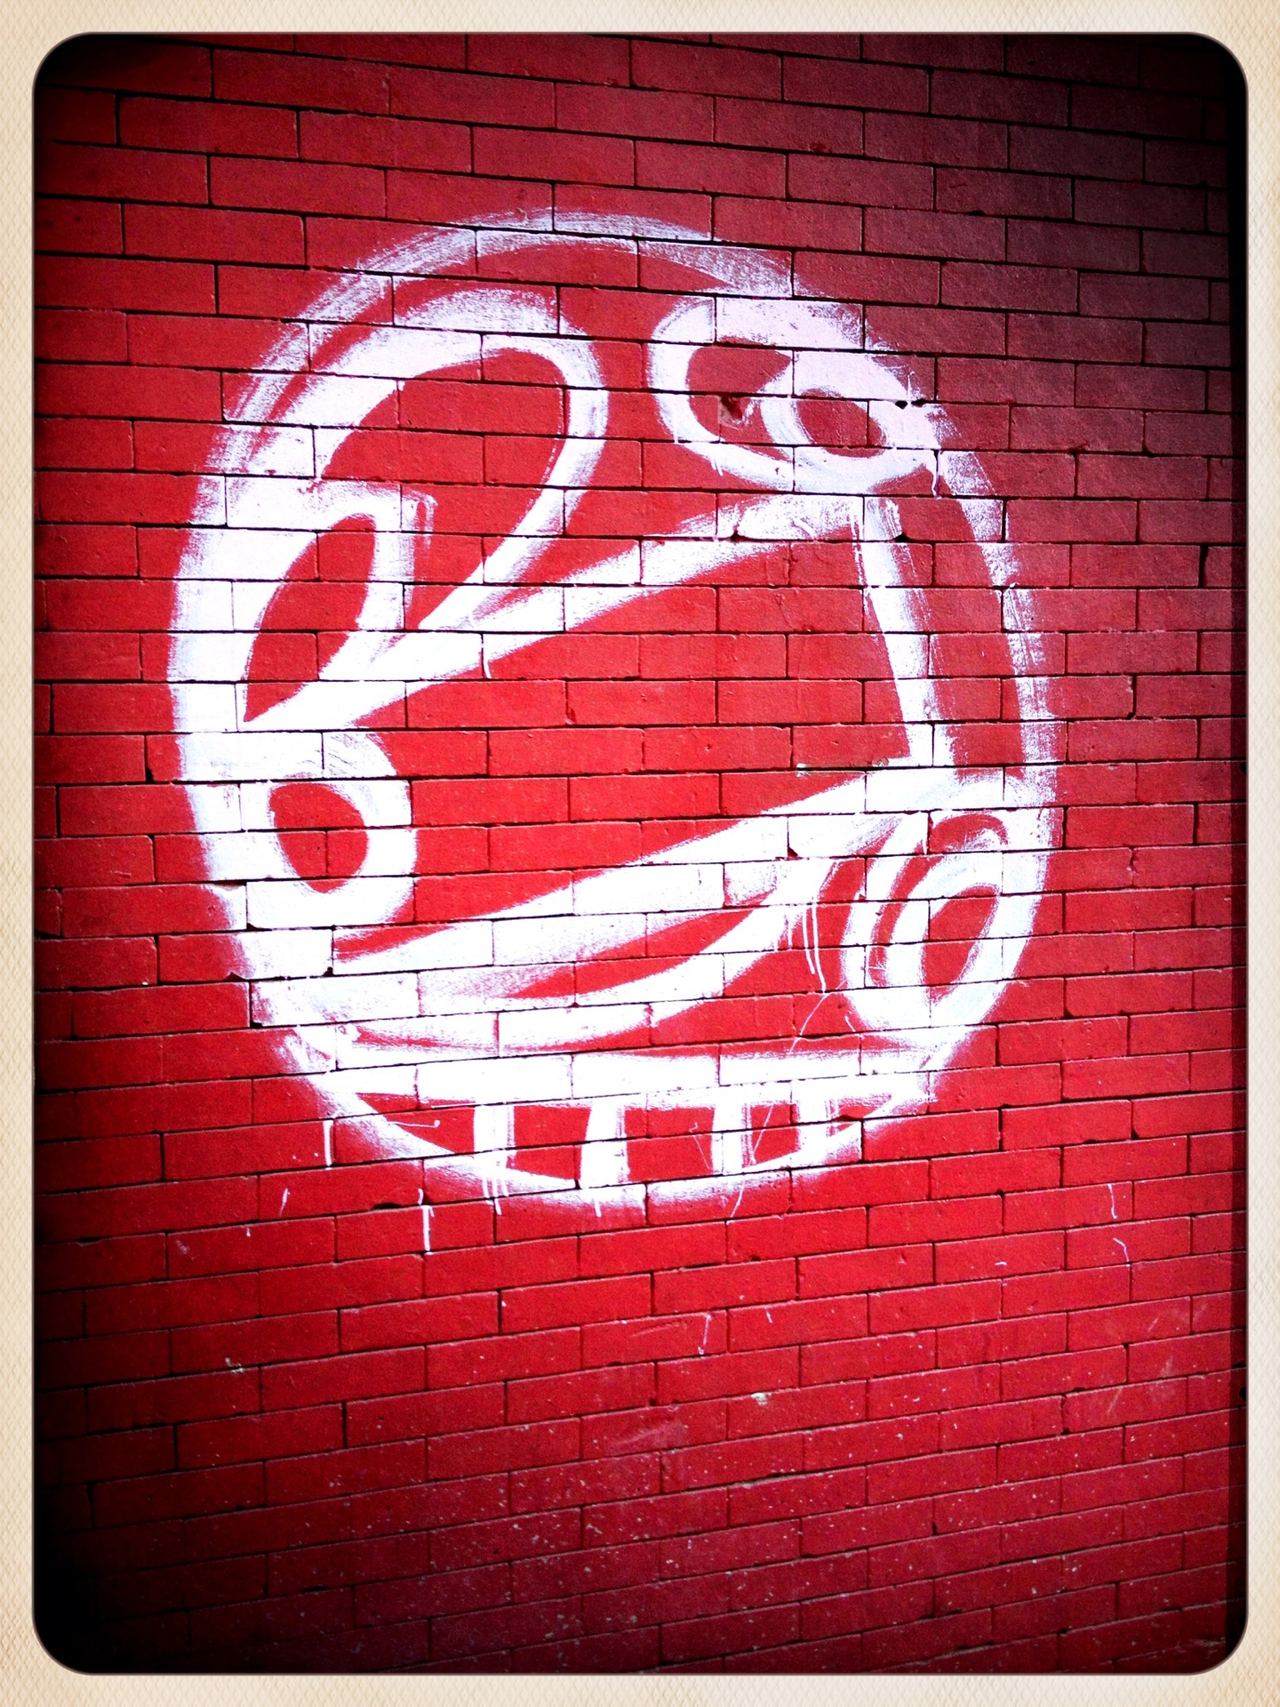 Line art/red wall - #peppersearch #pepper #graffiti #nyc #soho #redwall